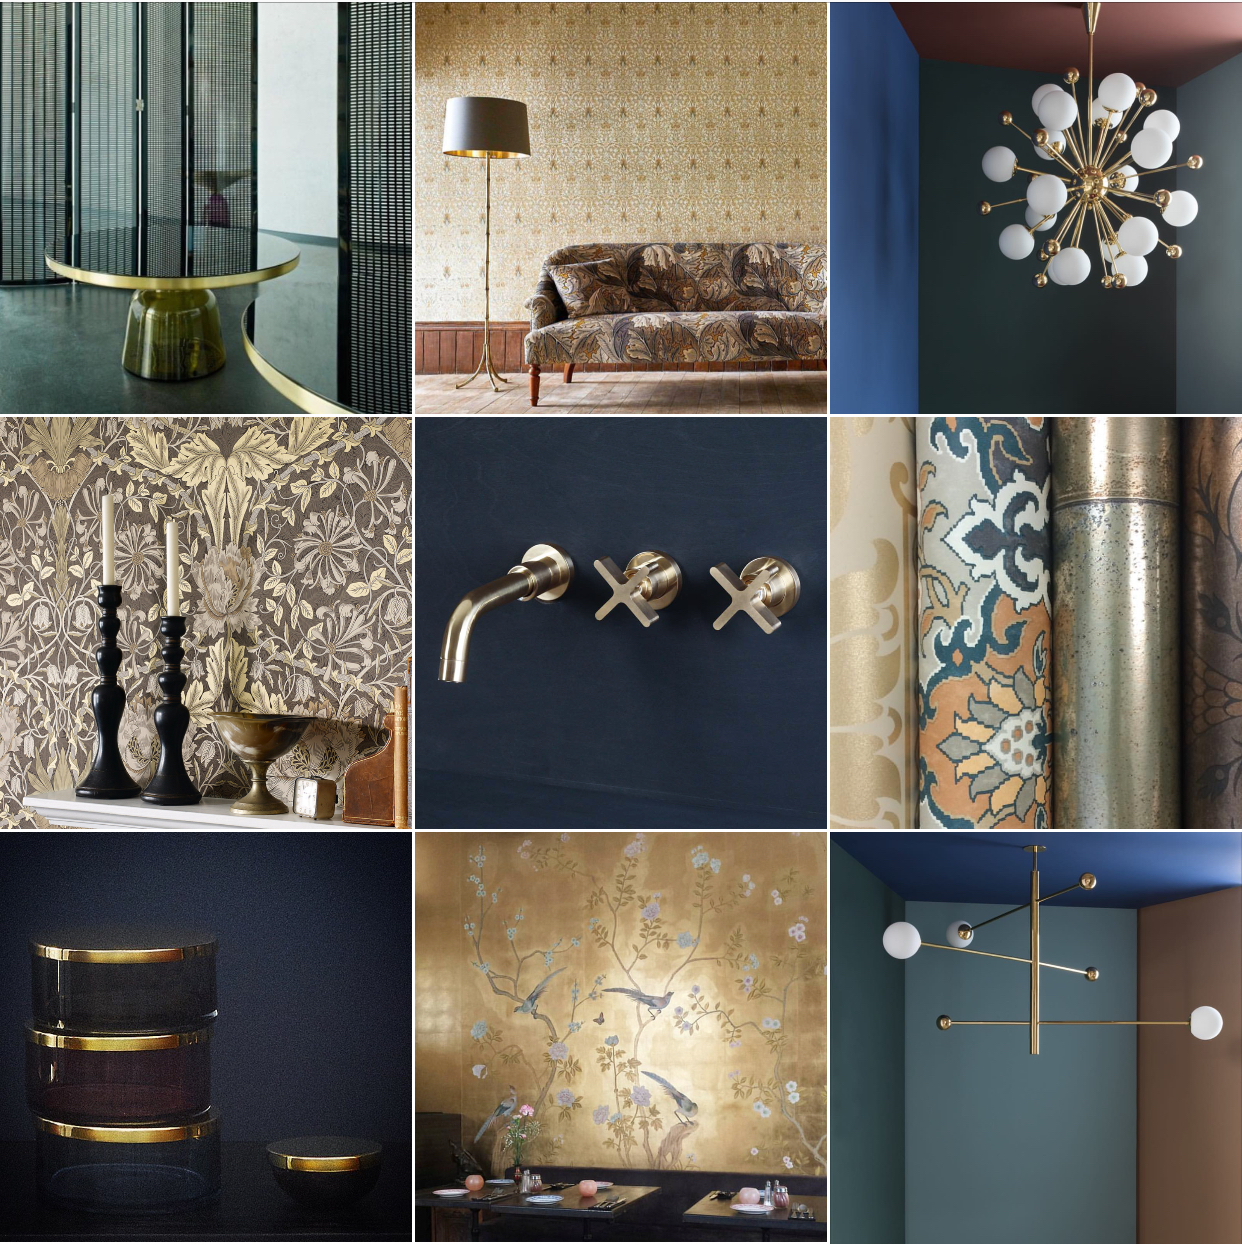 Gold: @michelleogundehin Instagram moodboard featuring lights from Magic Circus Editions, wallpaper from William Morris & Co., Cole & Son and De Gournay; hardware from the Sussex-based Studio Ore, Sebastian Herkner's Bell Tables for Classicon and glass storage jars from Aytm Design.